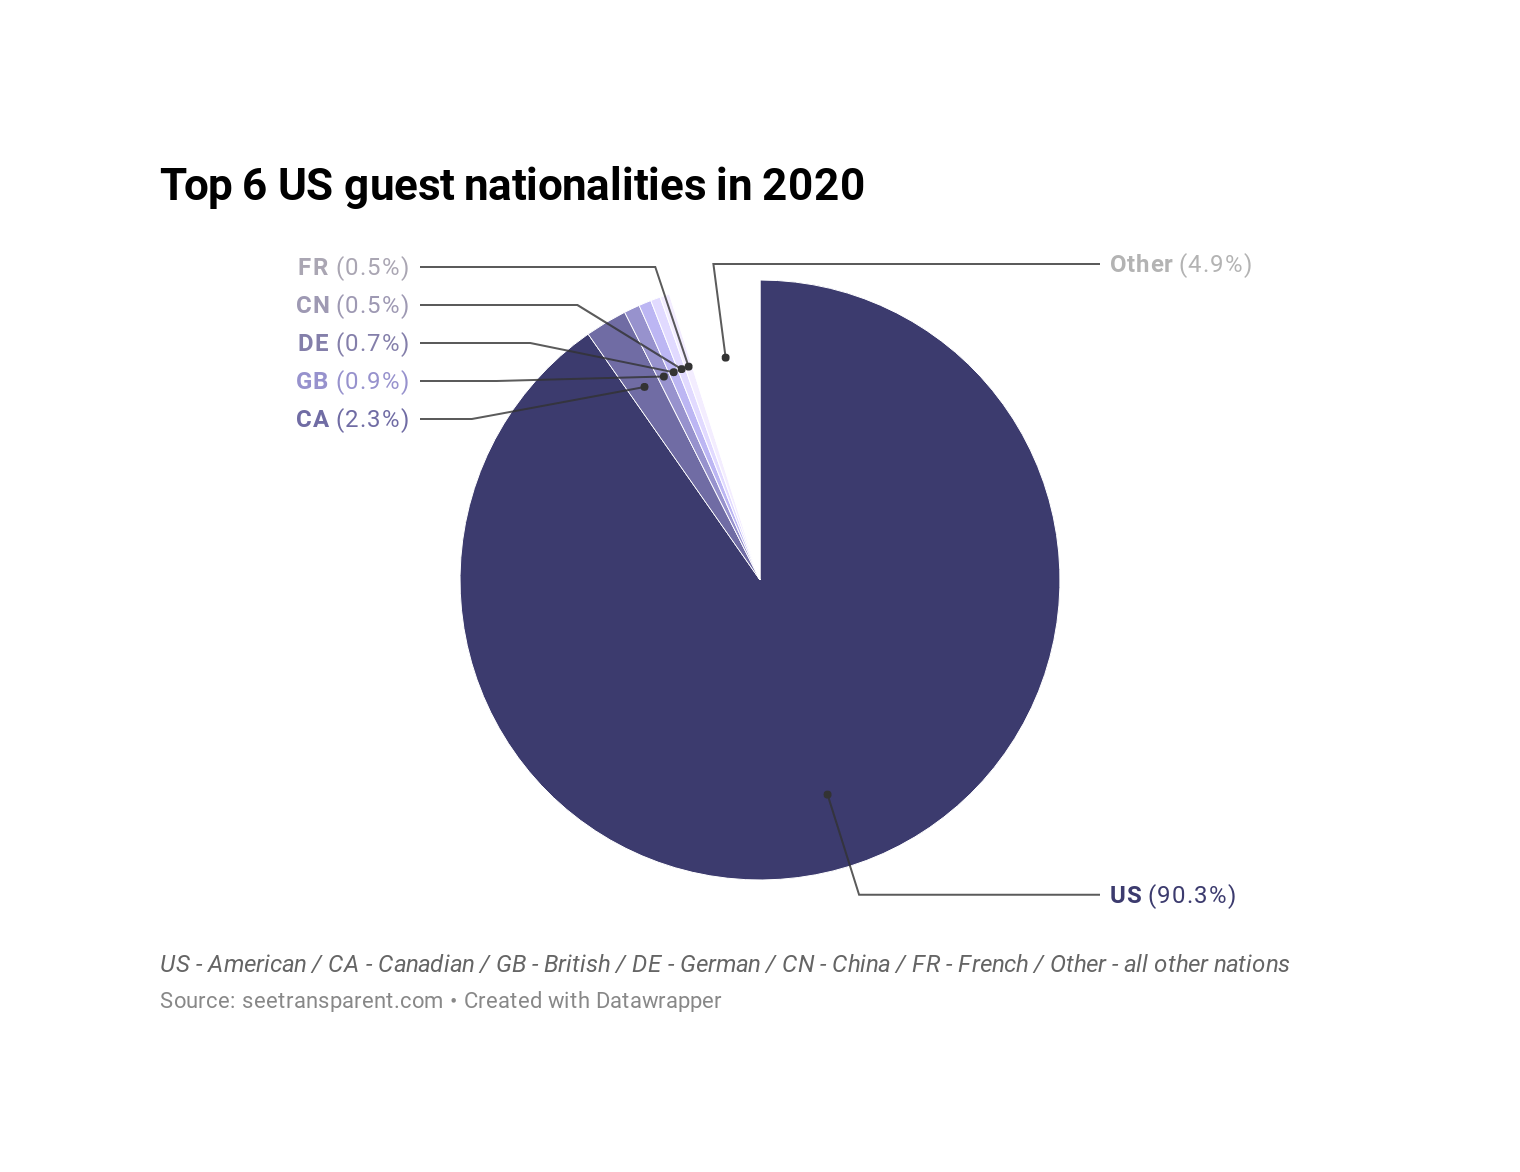 tPmlr-top-6-us-guest-nationalities-in-2020 (3)